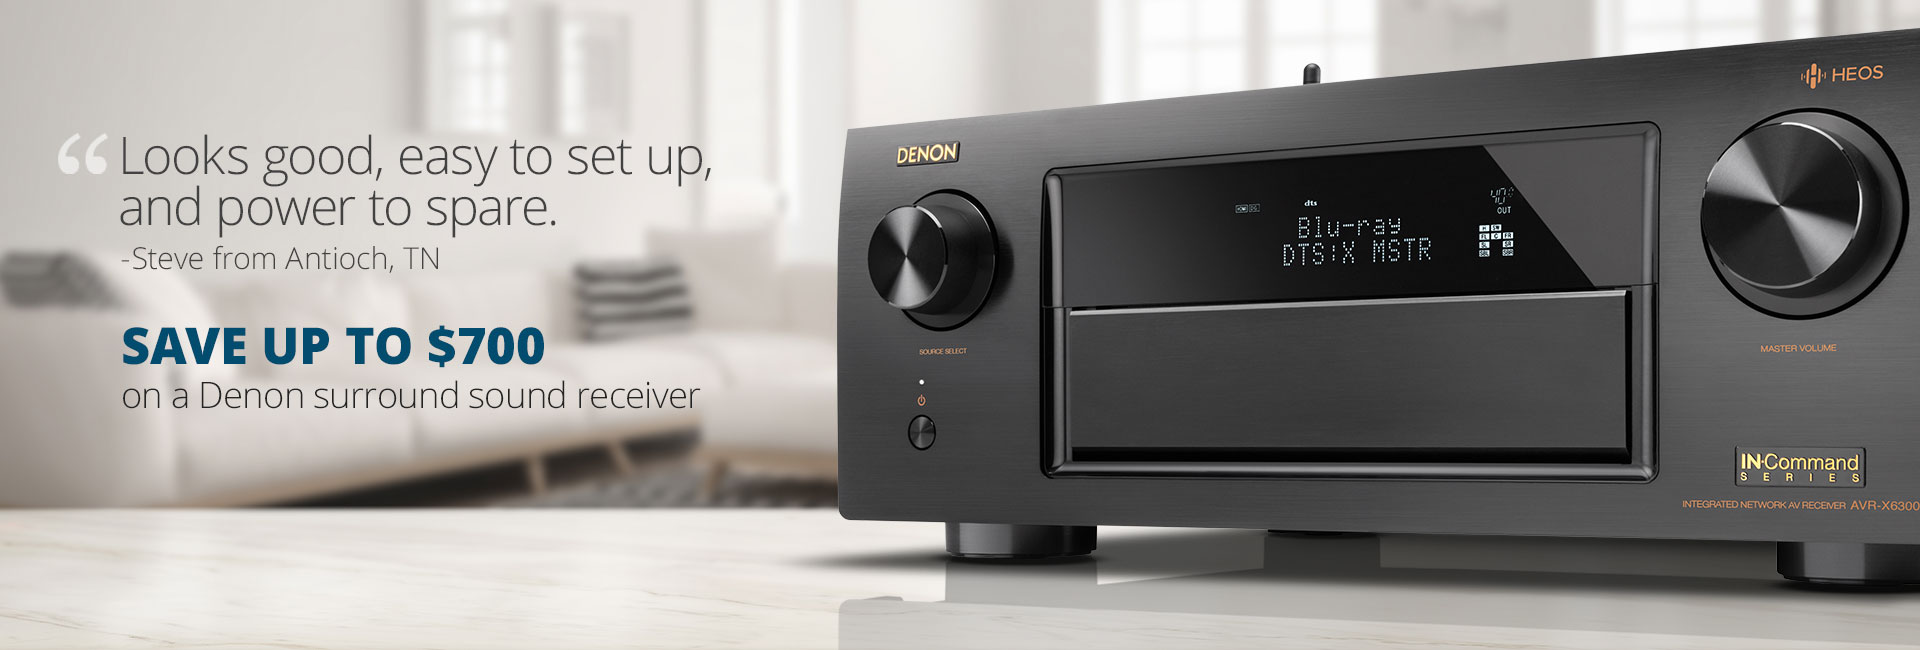 Save up to $700 on a Denon surround sound receiver